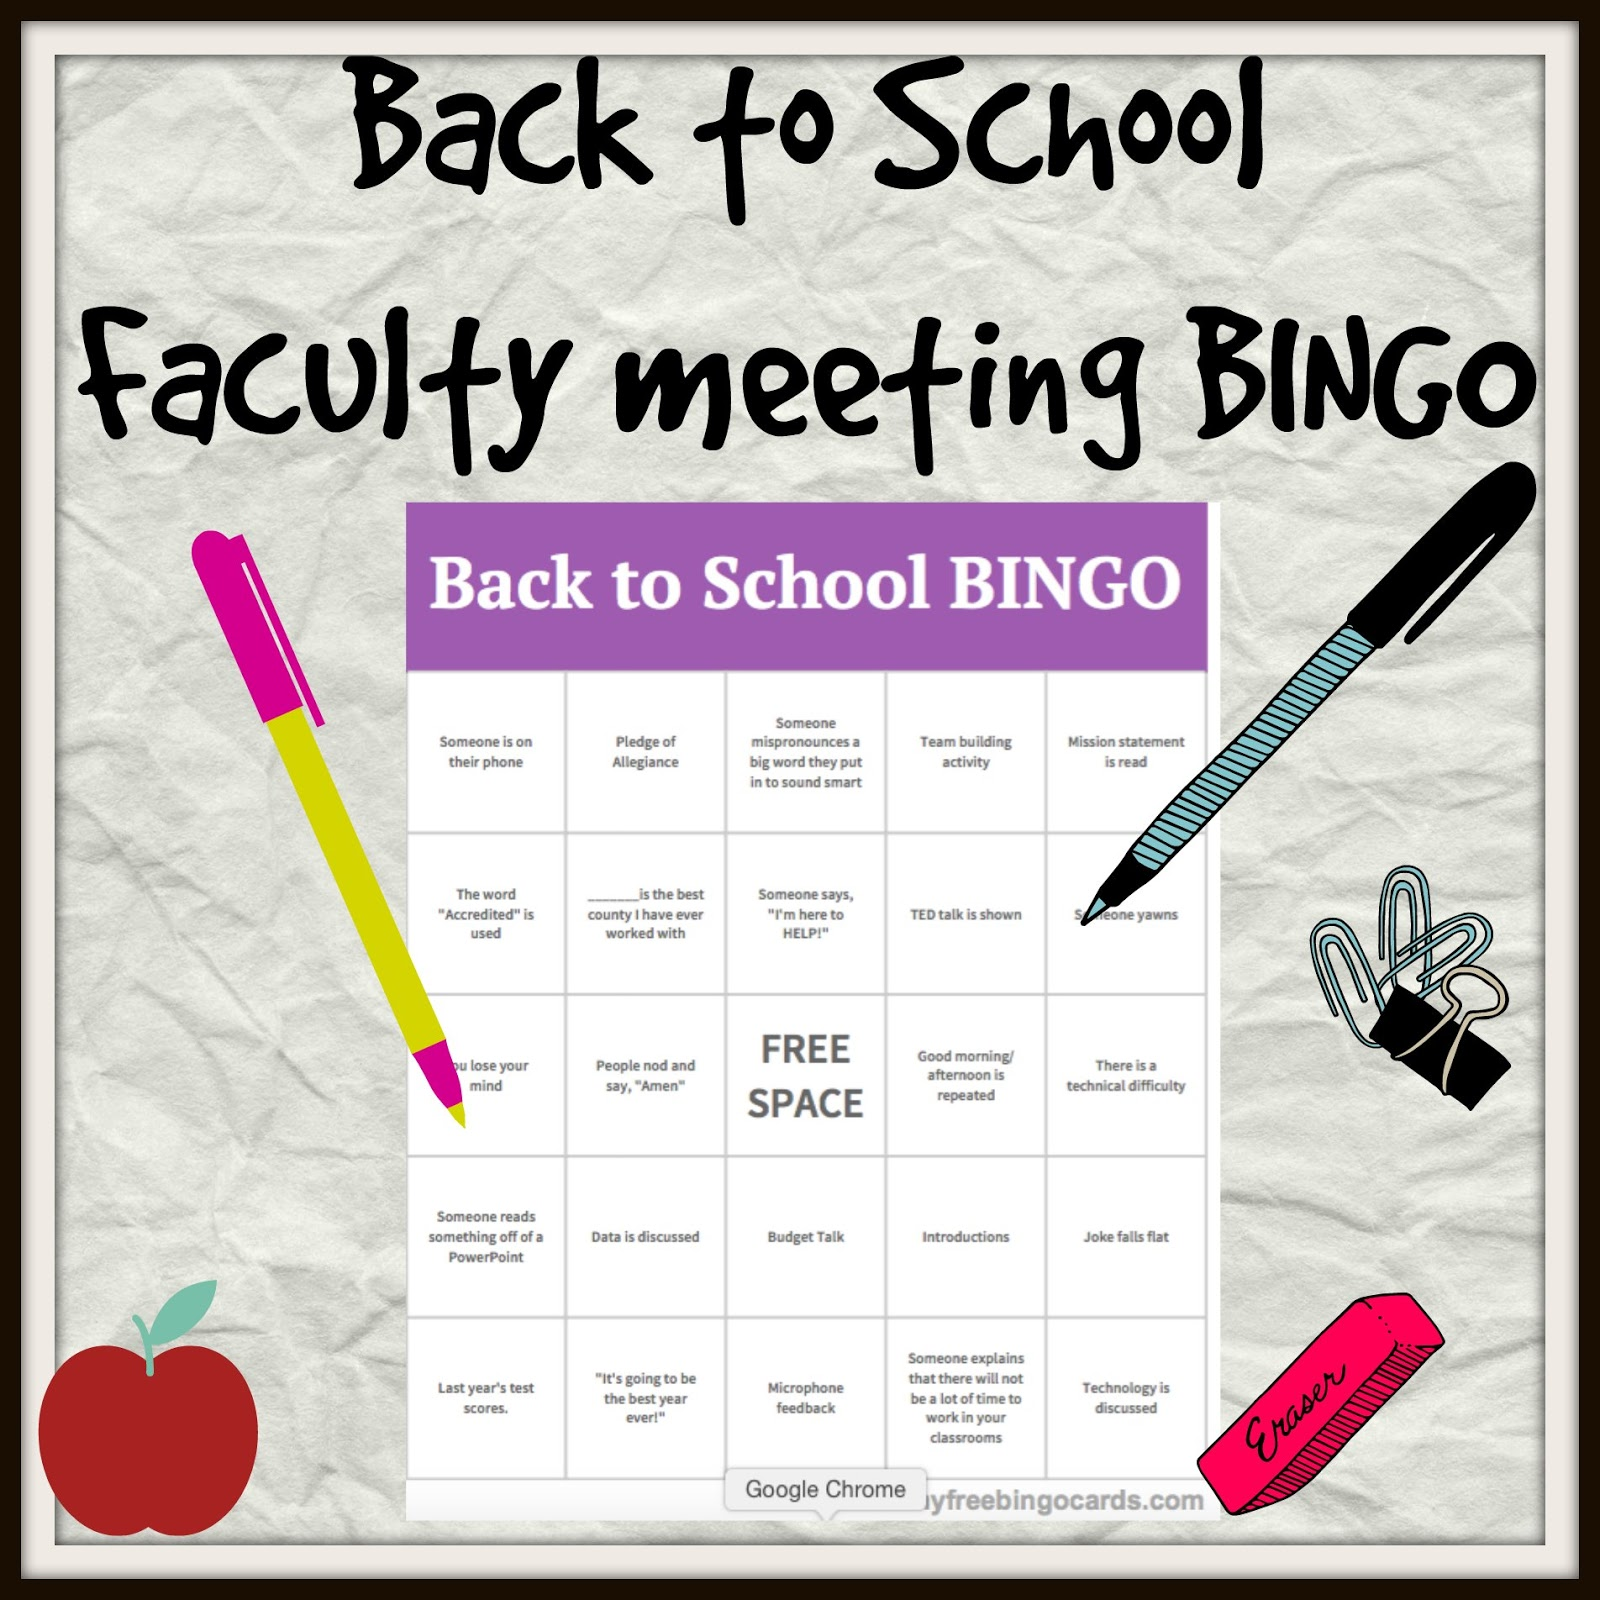 Faculty Meeting Back To School Bingo